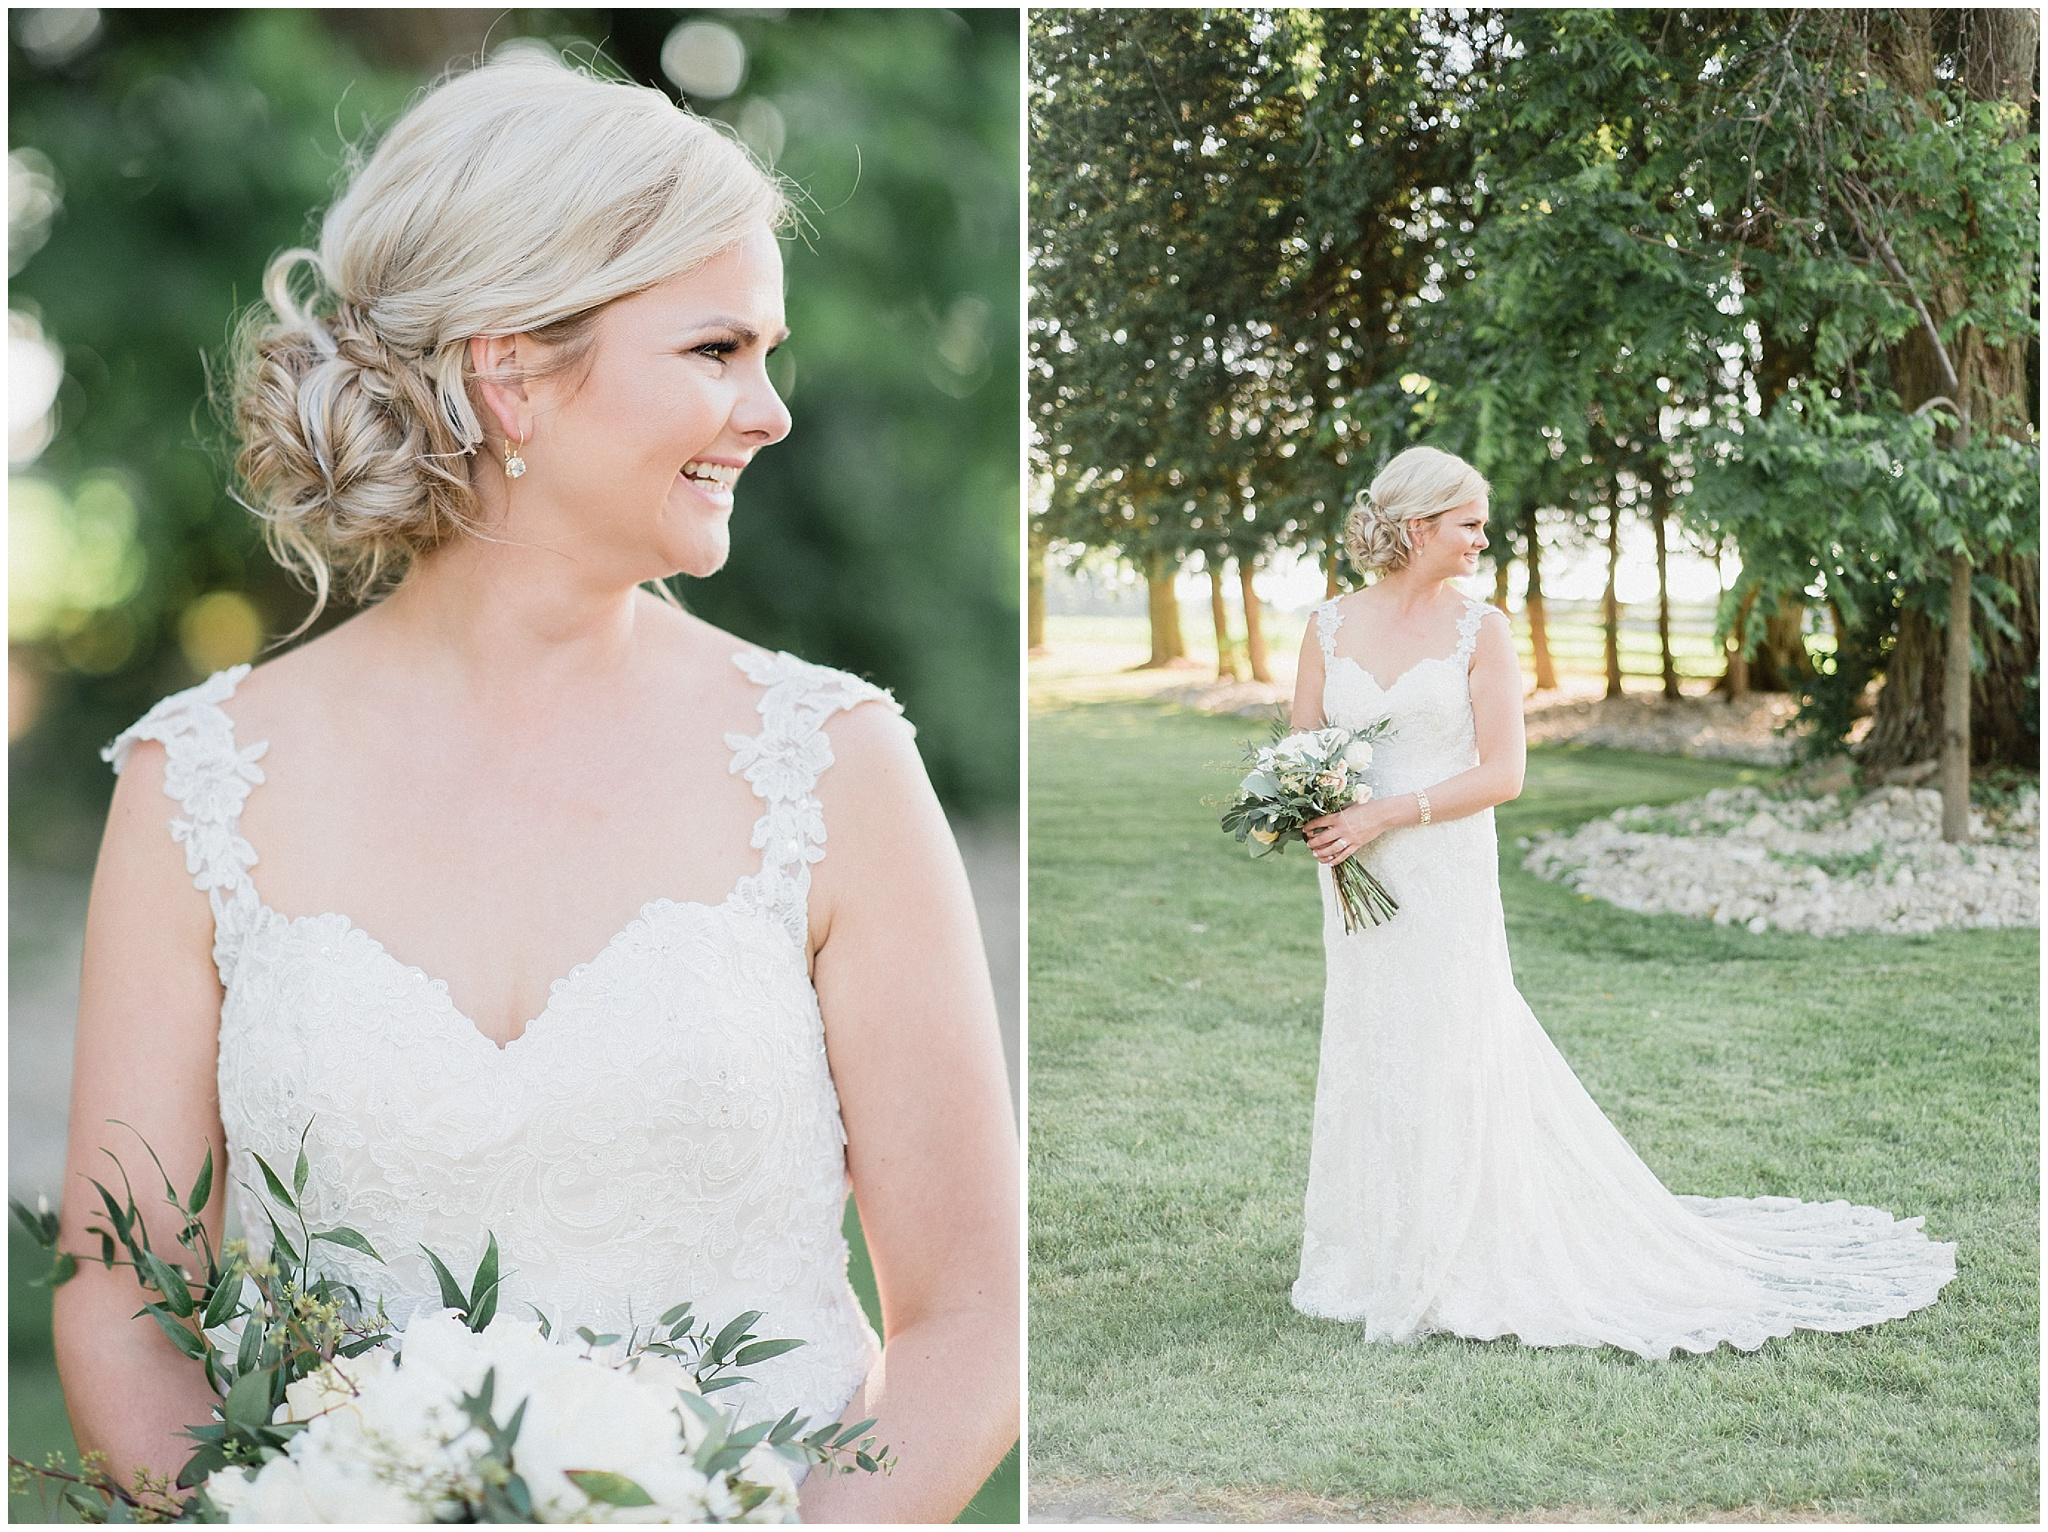 Essense of Australia gown | Tent wedding on family farm in Guelph, Ontario by Jenn Kavanagh Photography